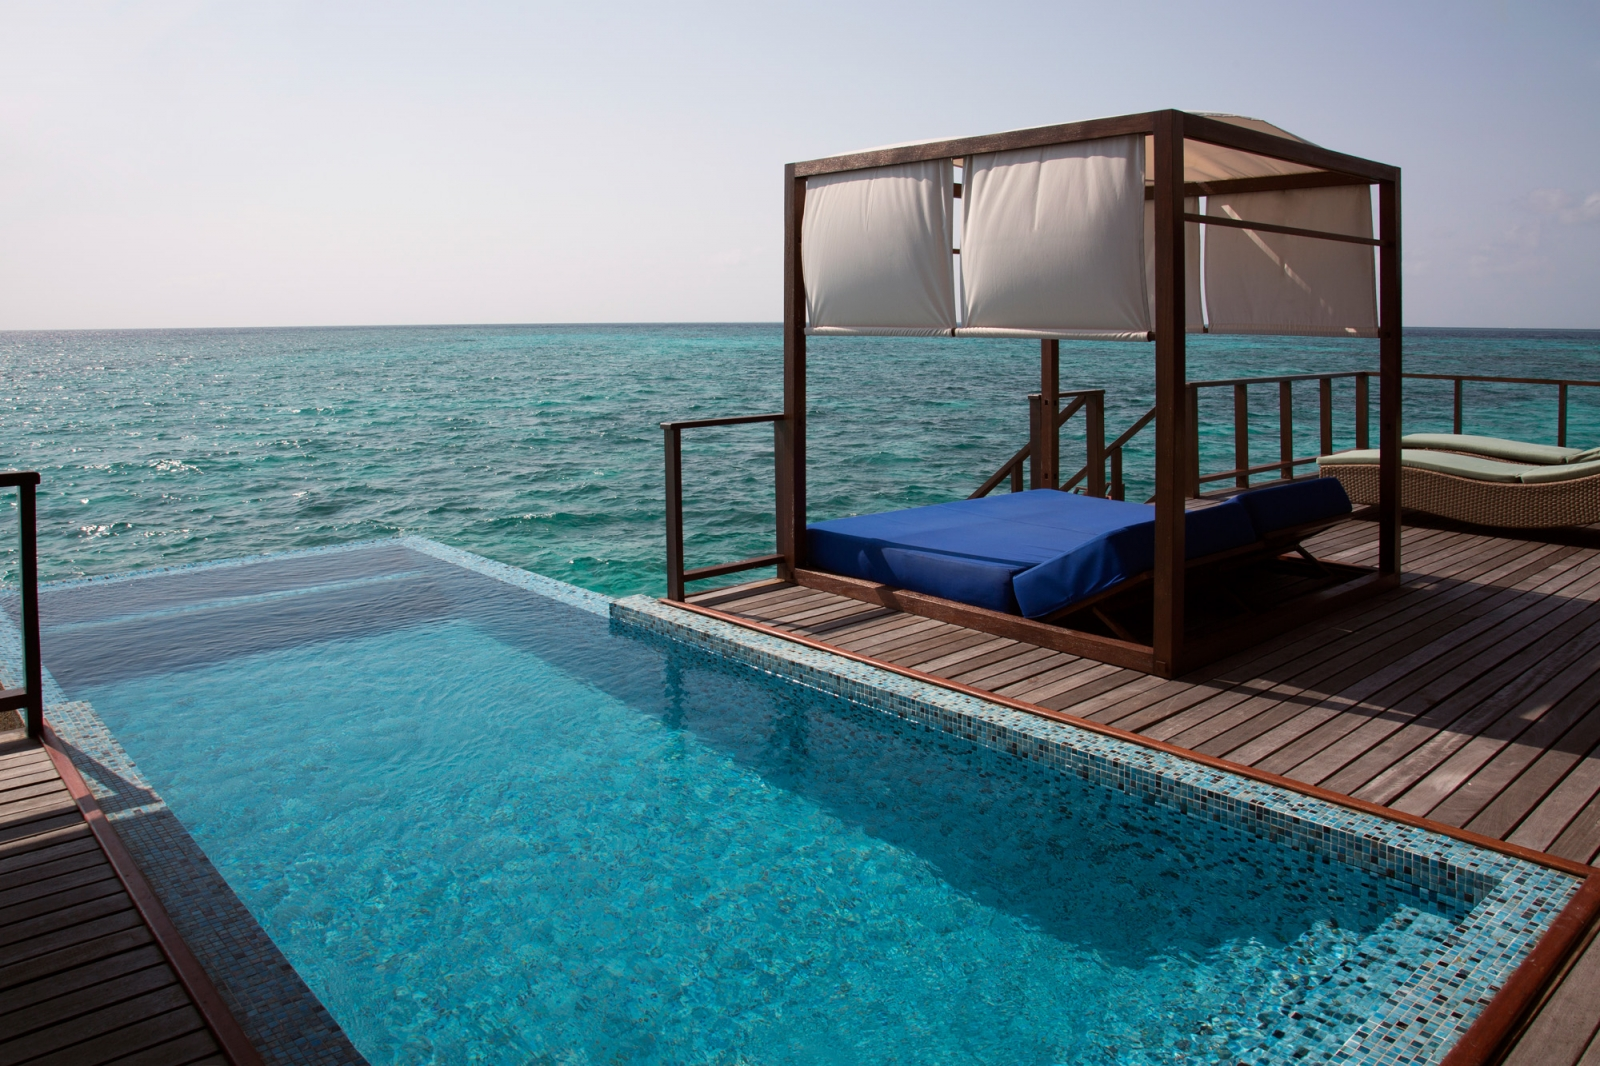 Laser-Therapie: Foto vom Wellnesshotel Coco Bodu Hithi | Wellness Nord-Male-Atoll